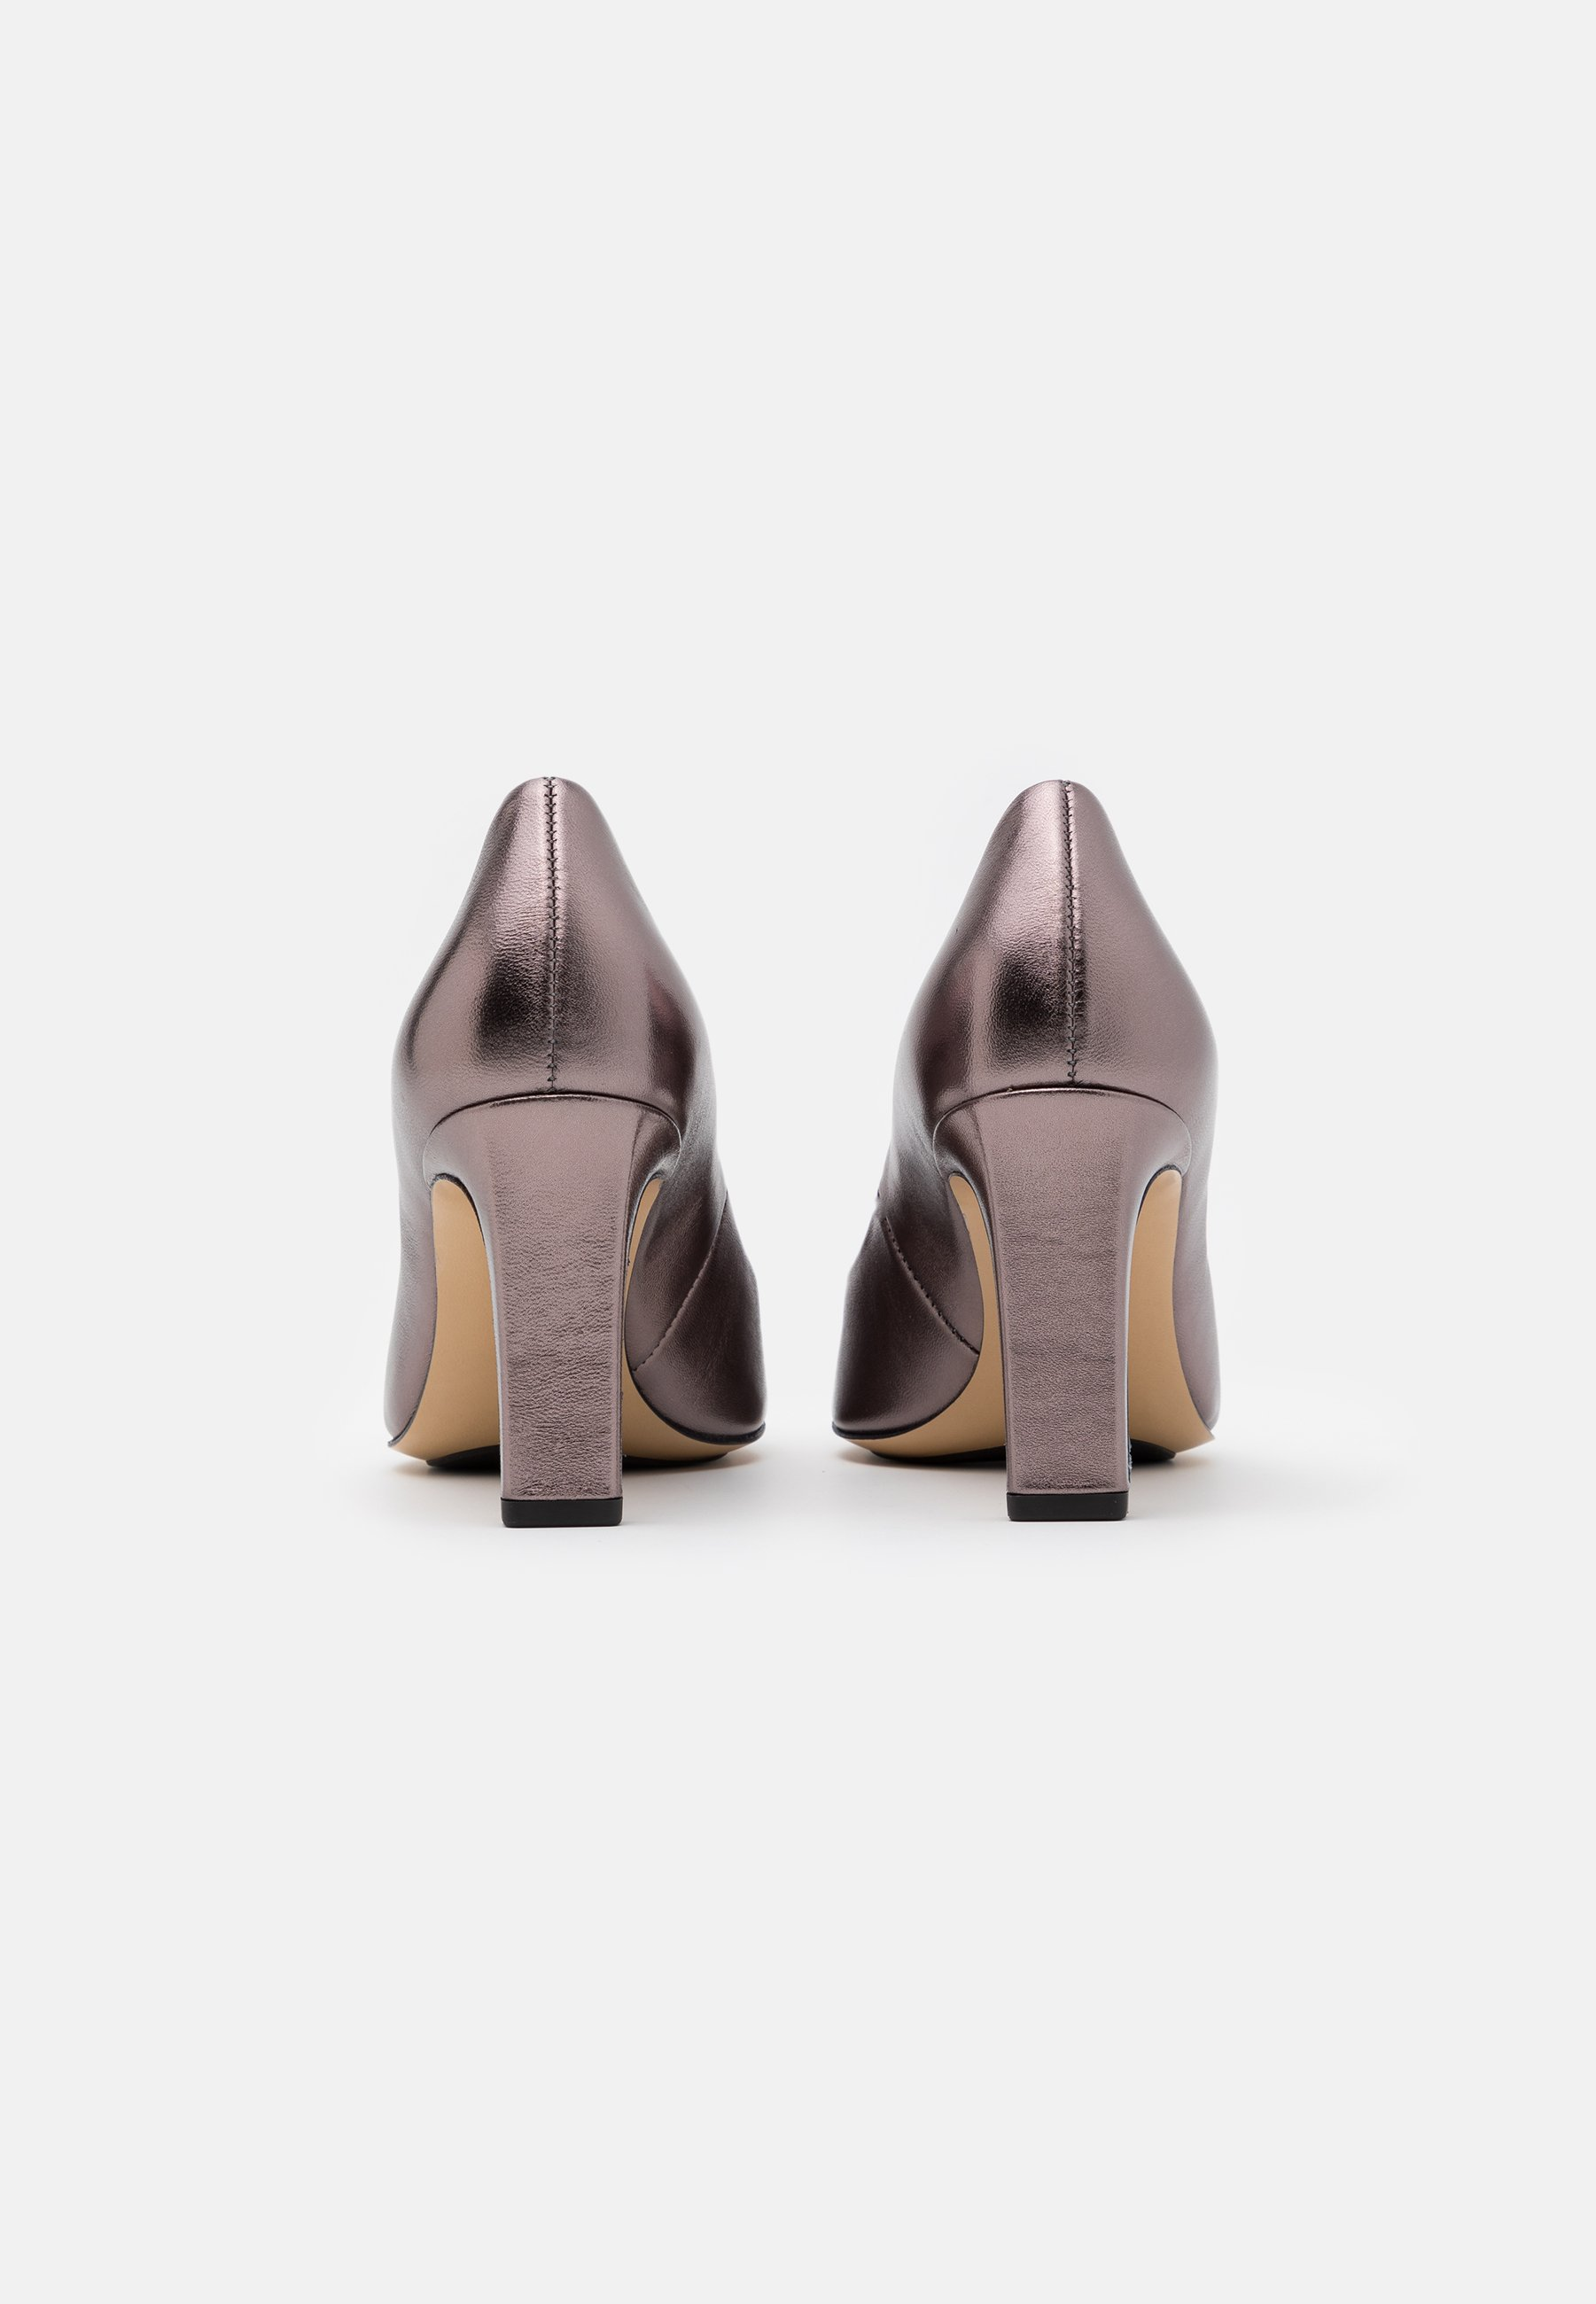 Högl High Heel Pumps metallic silber/bronze